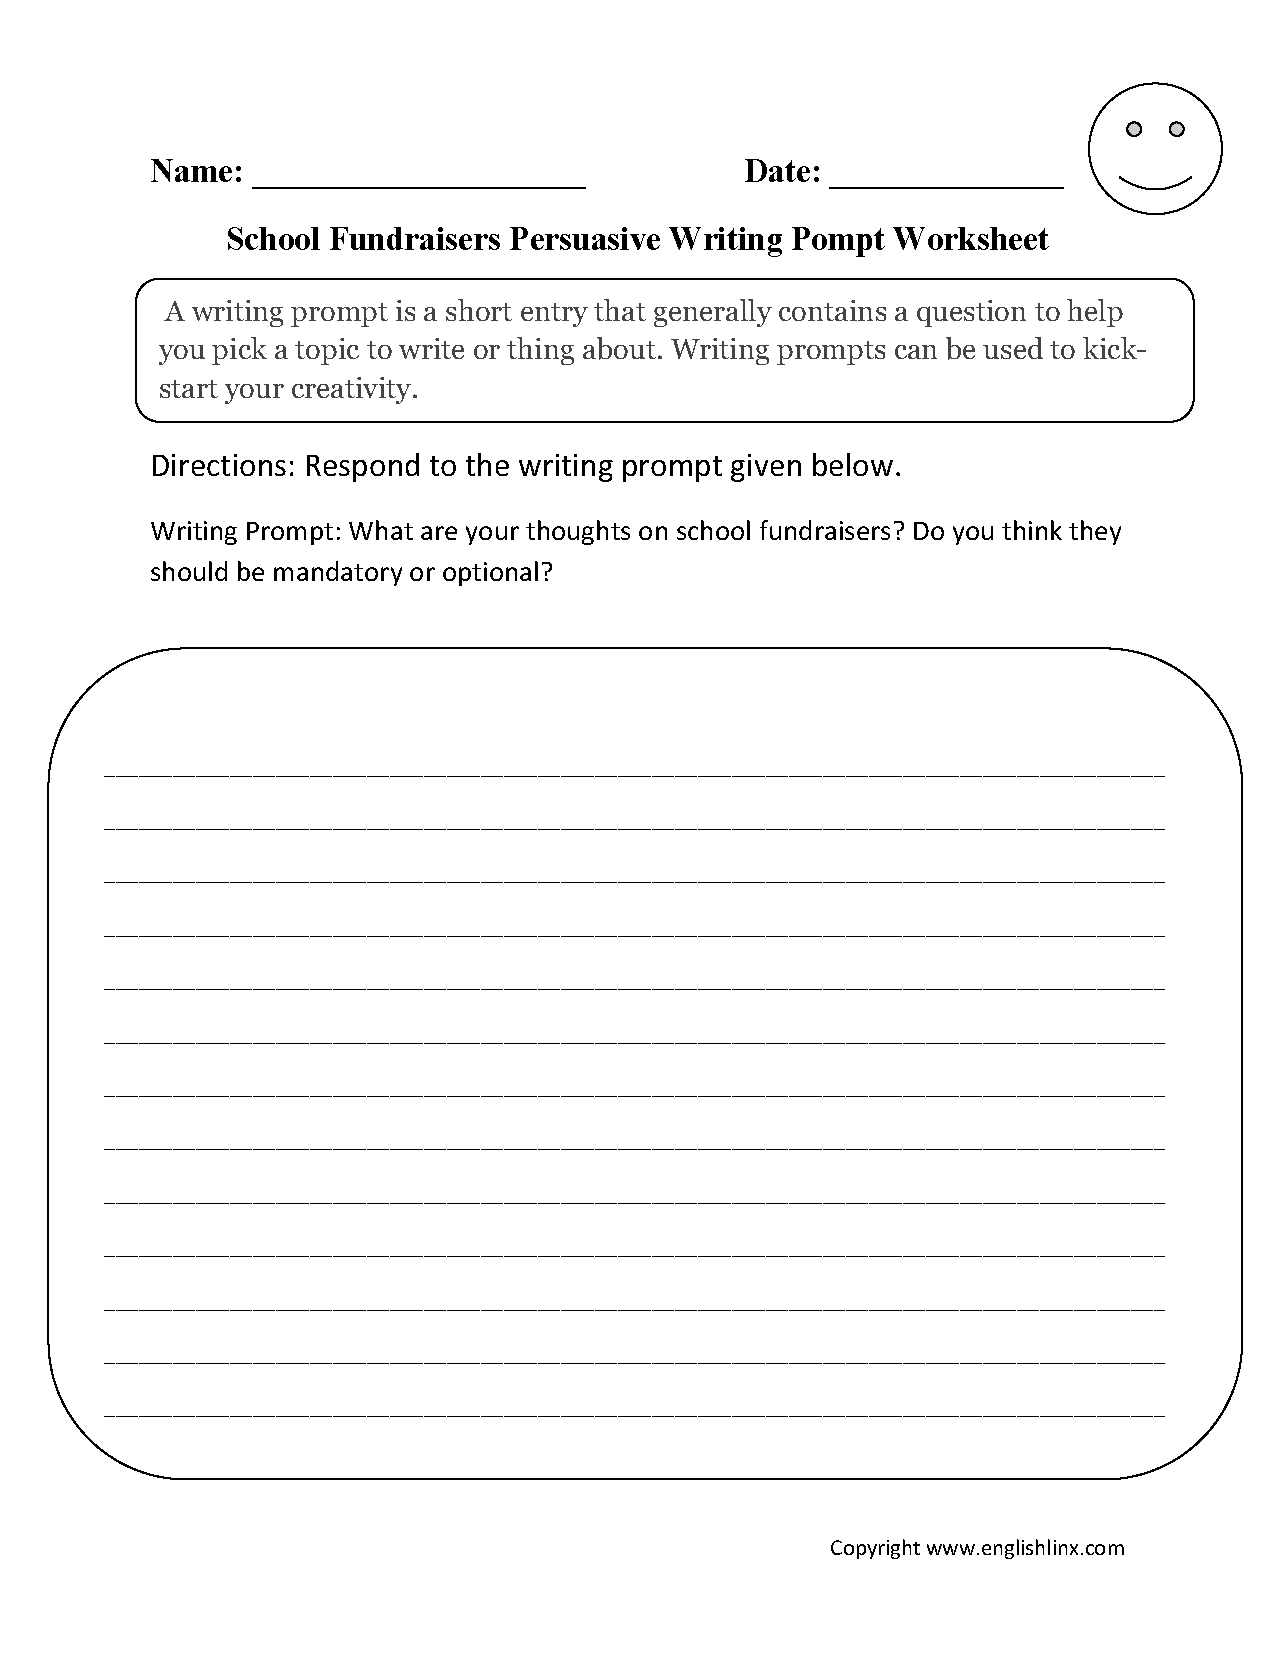 Worksheets 2nd Grade Writing Prompts Worksheets writing prompts worksheets persuasive prompt worksheet